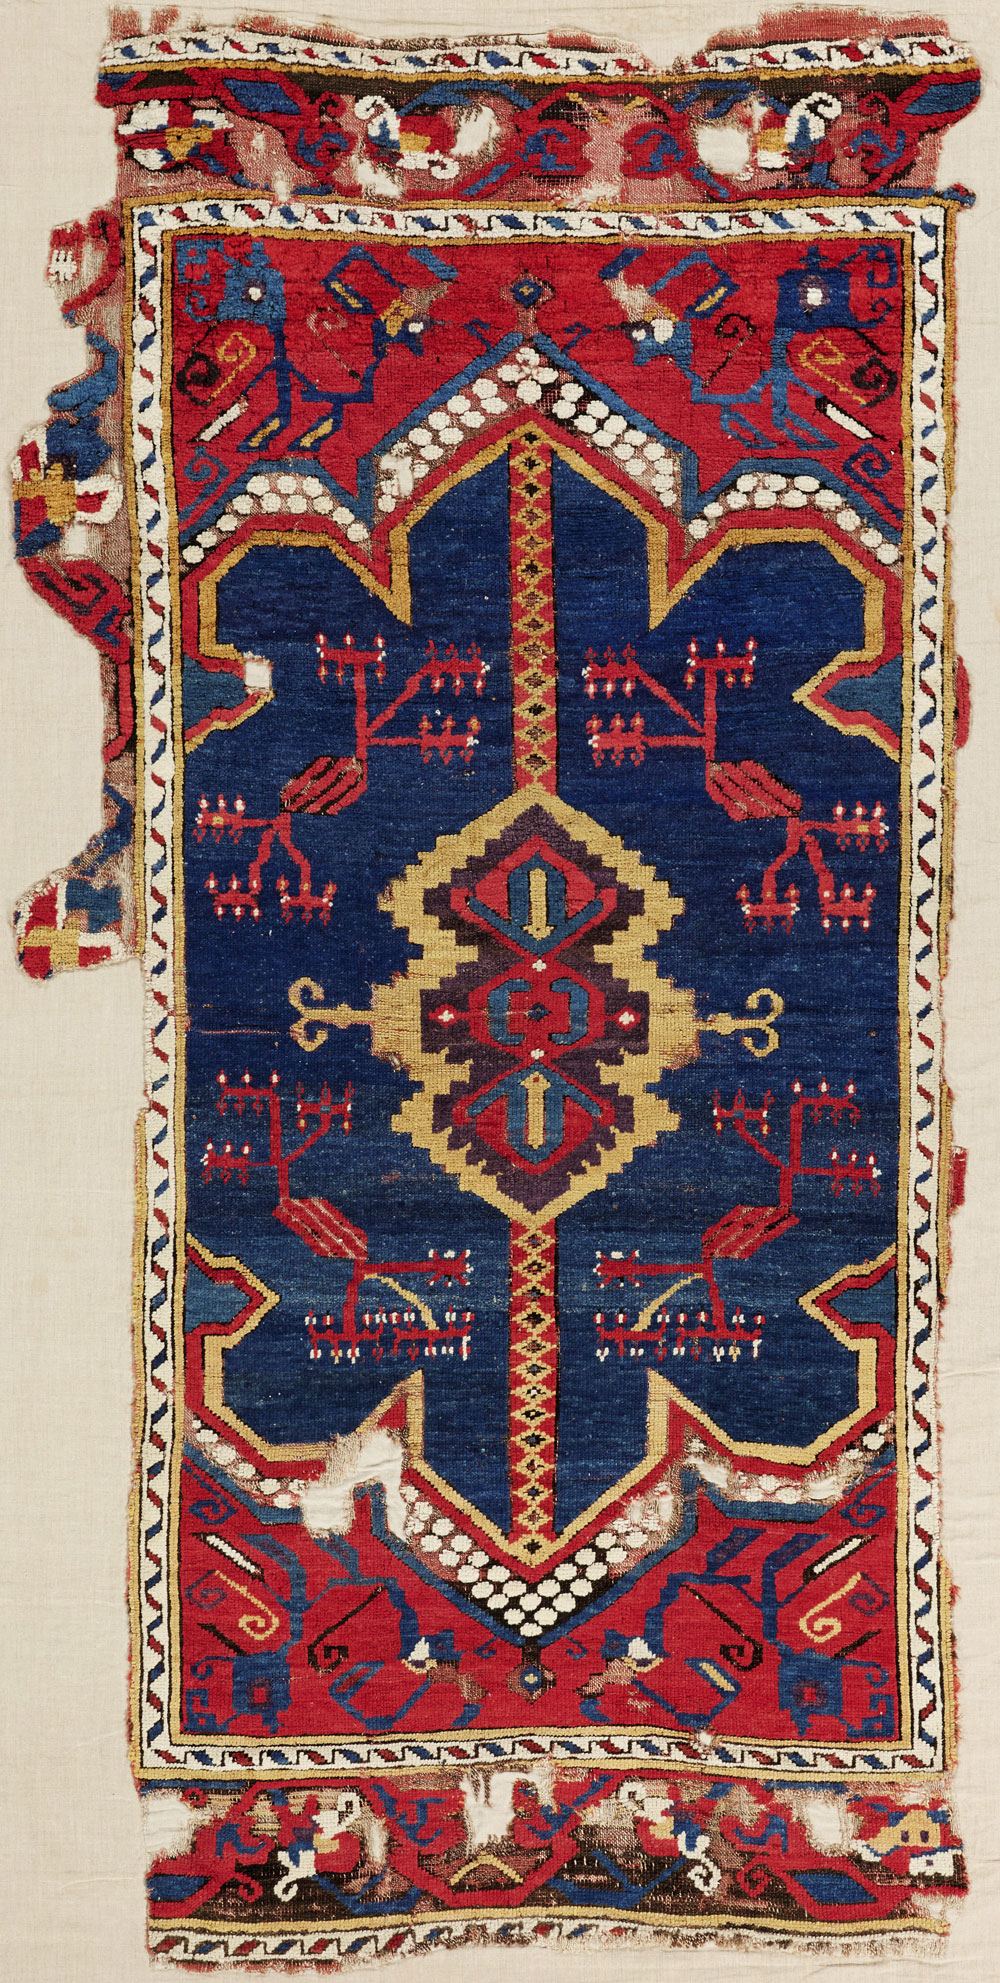 16th-17th century Central Anatolian carpet